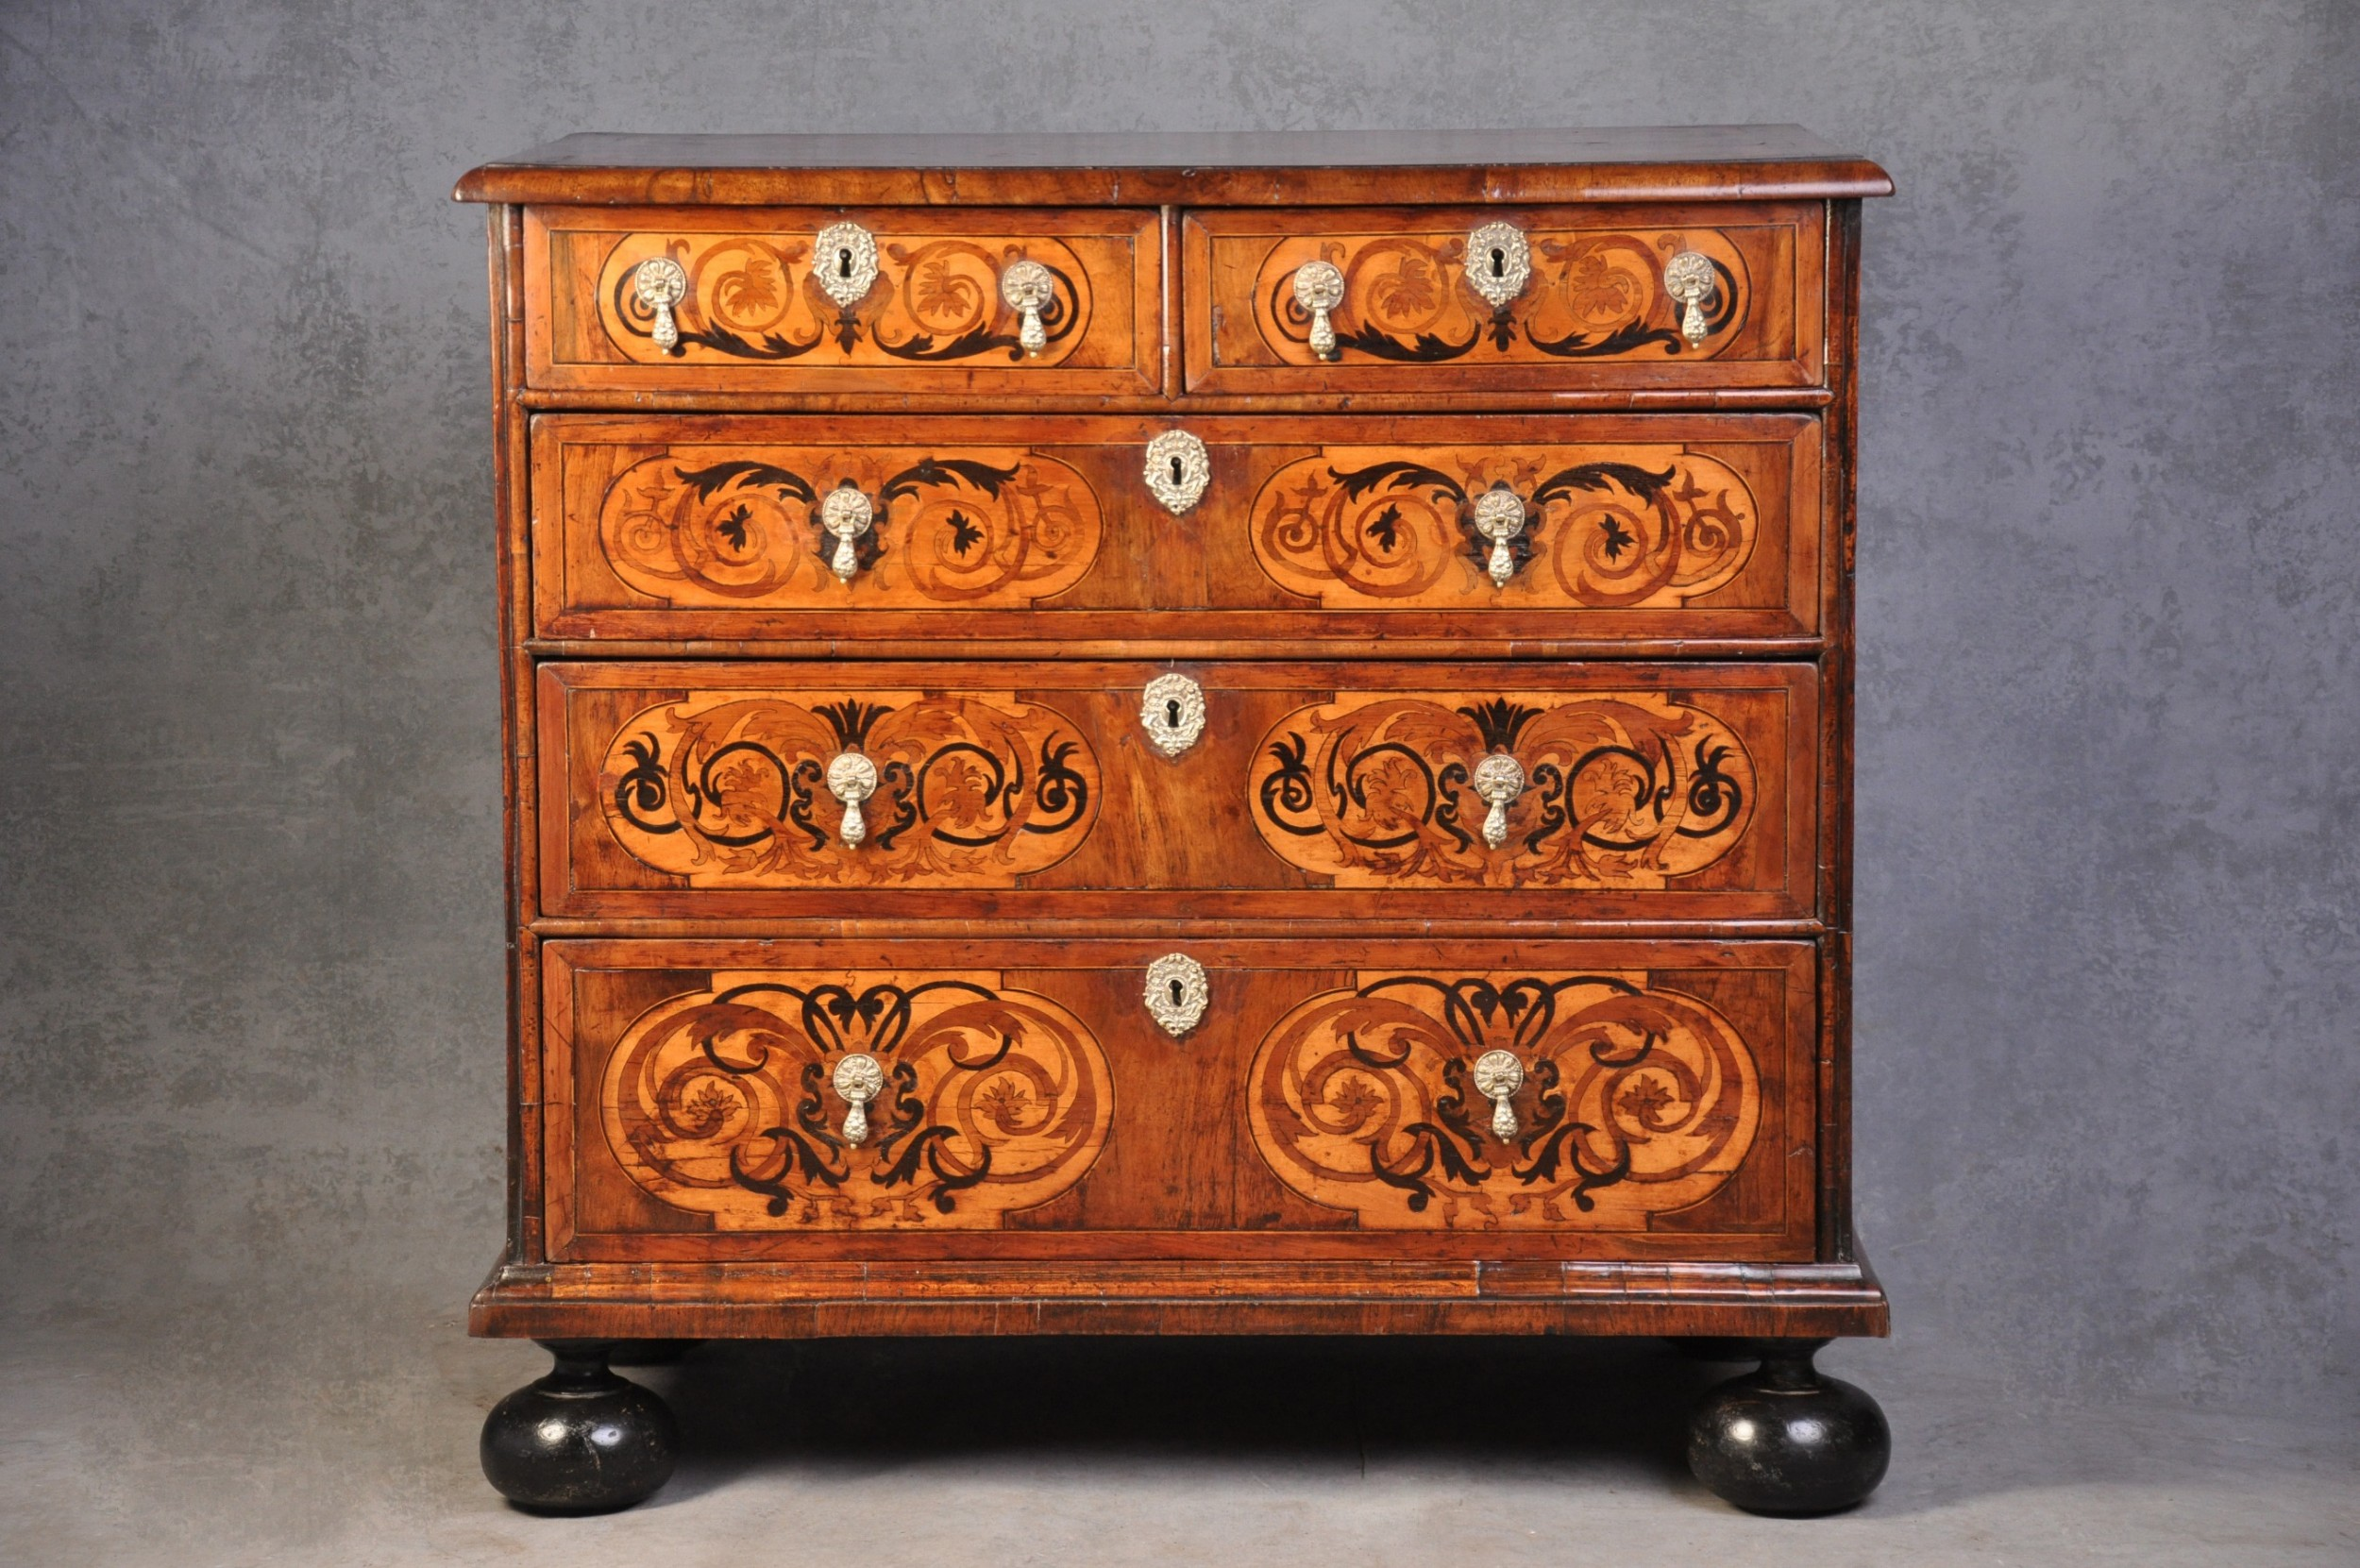 17th century english walnut and marquetry chest of drawers